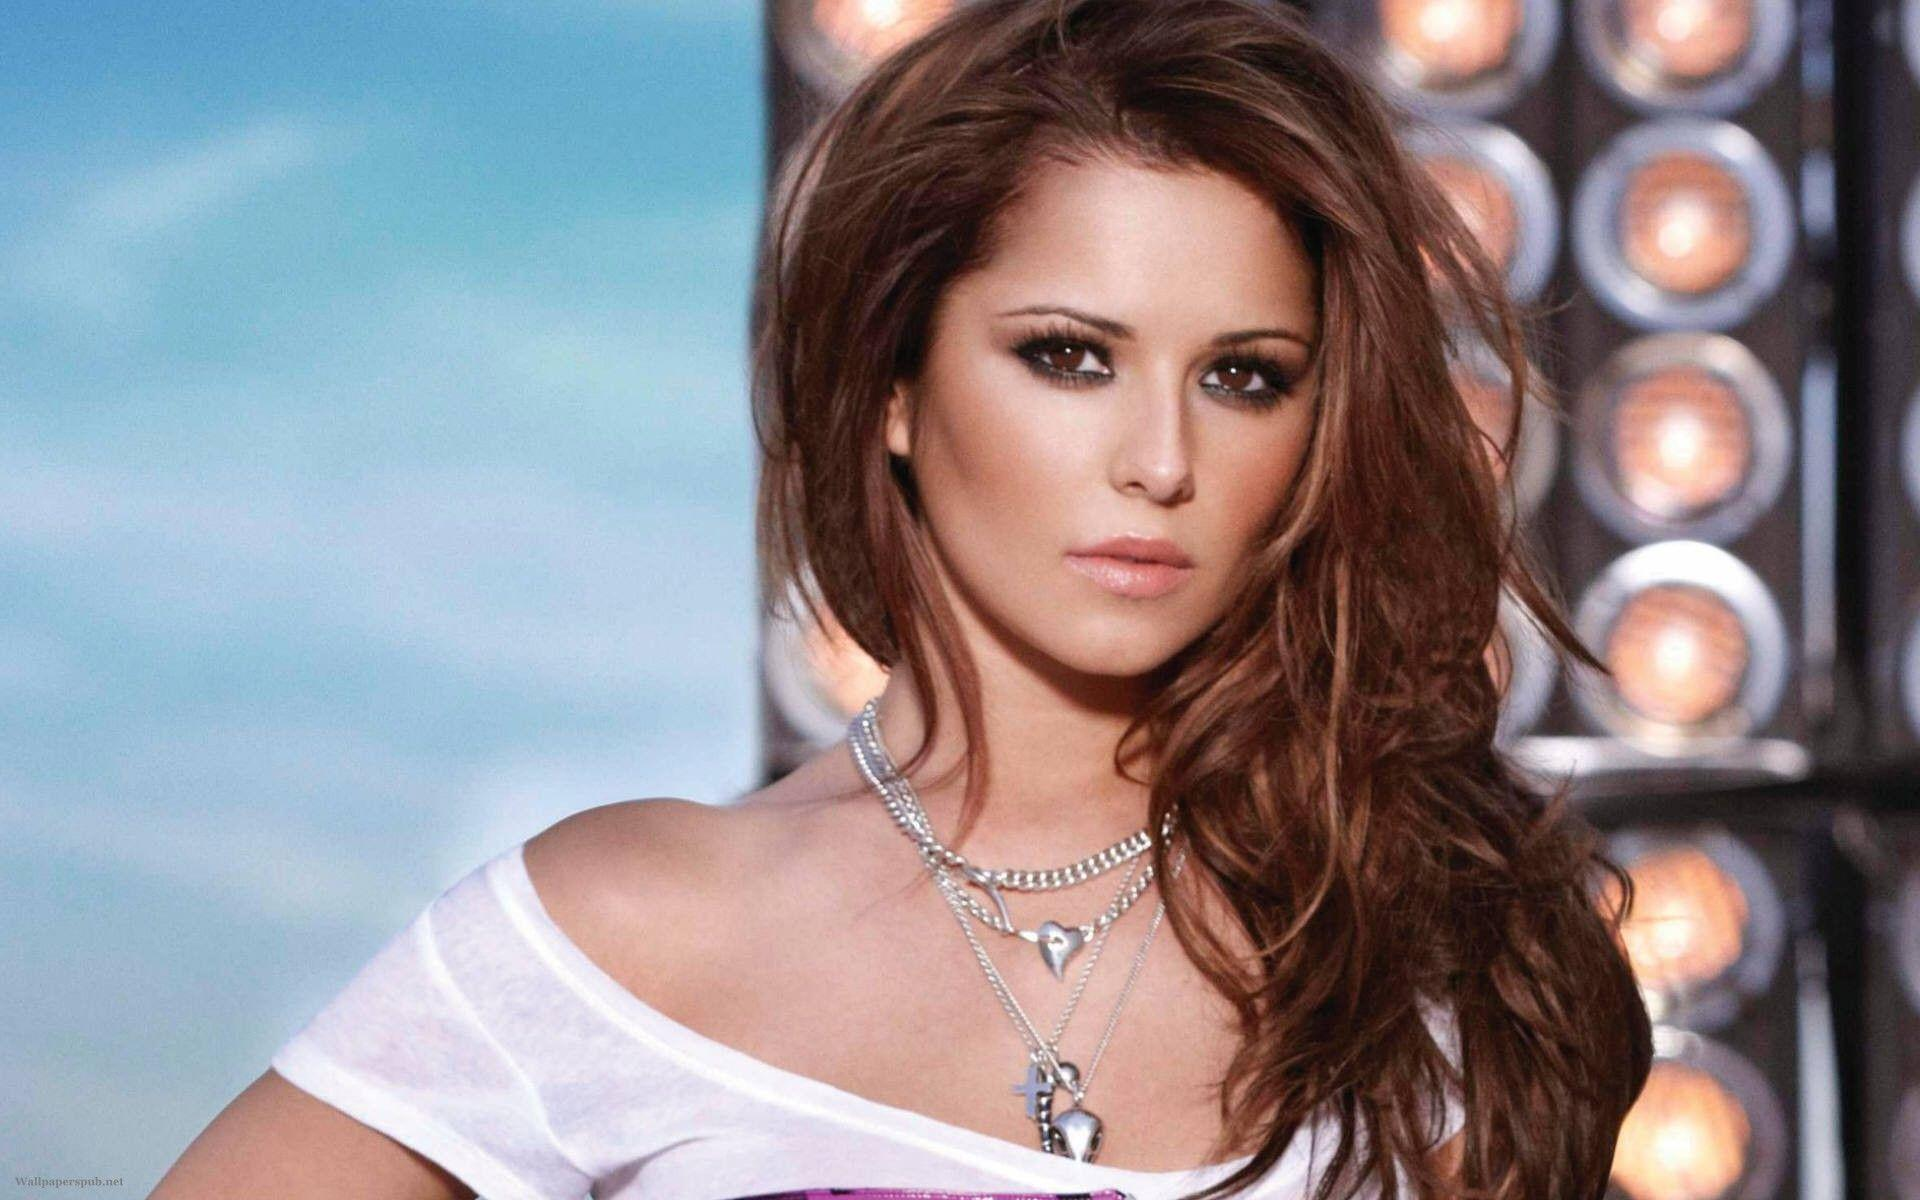 Cheryl Cole Wallpapers 2016 - Wallpaper Cave Cheryl Cole